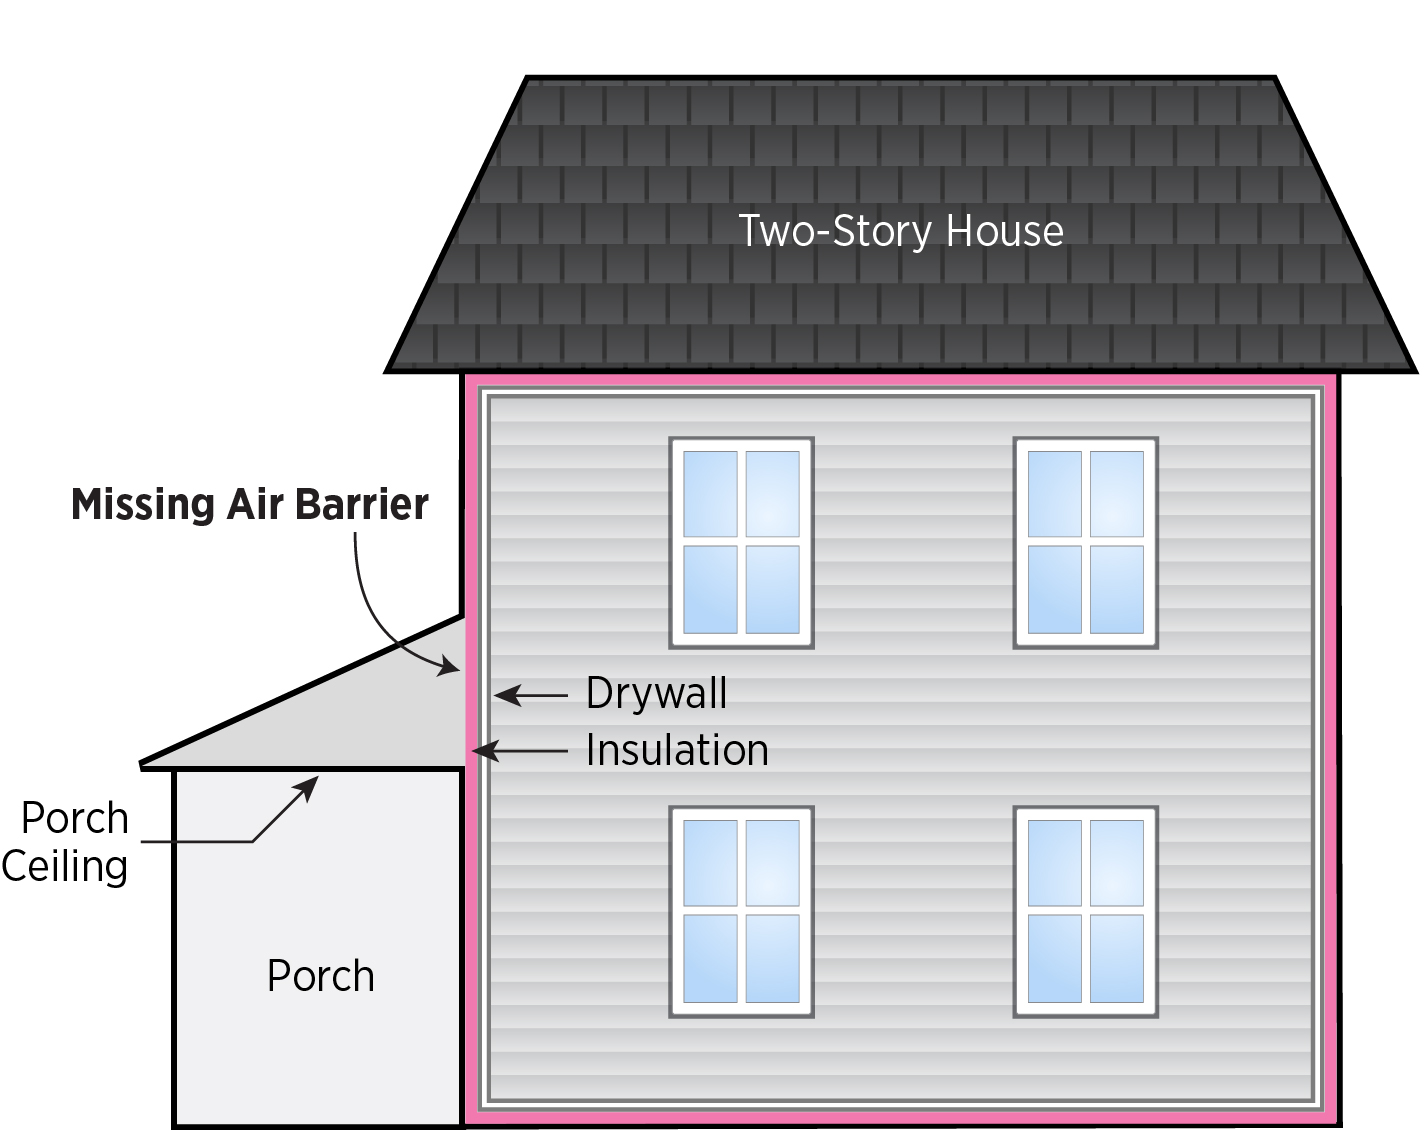 In two-story homes, the air barrier separating the wall insulation from the porch attic is sometimes missing